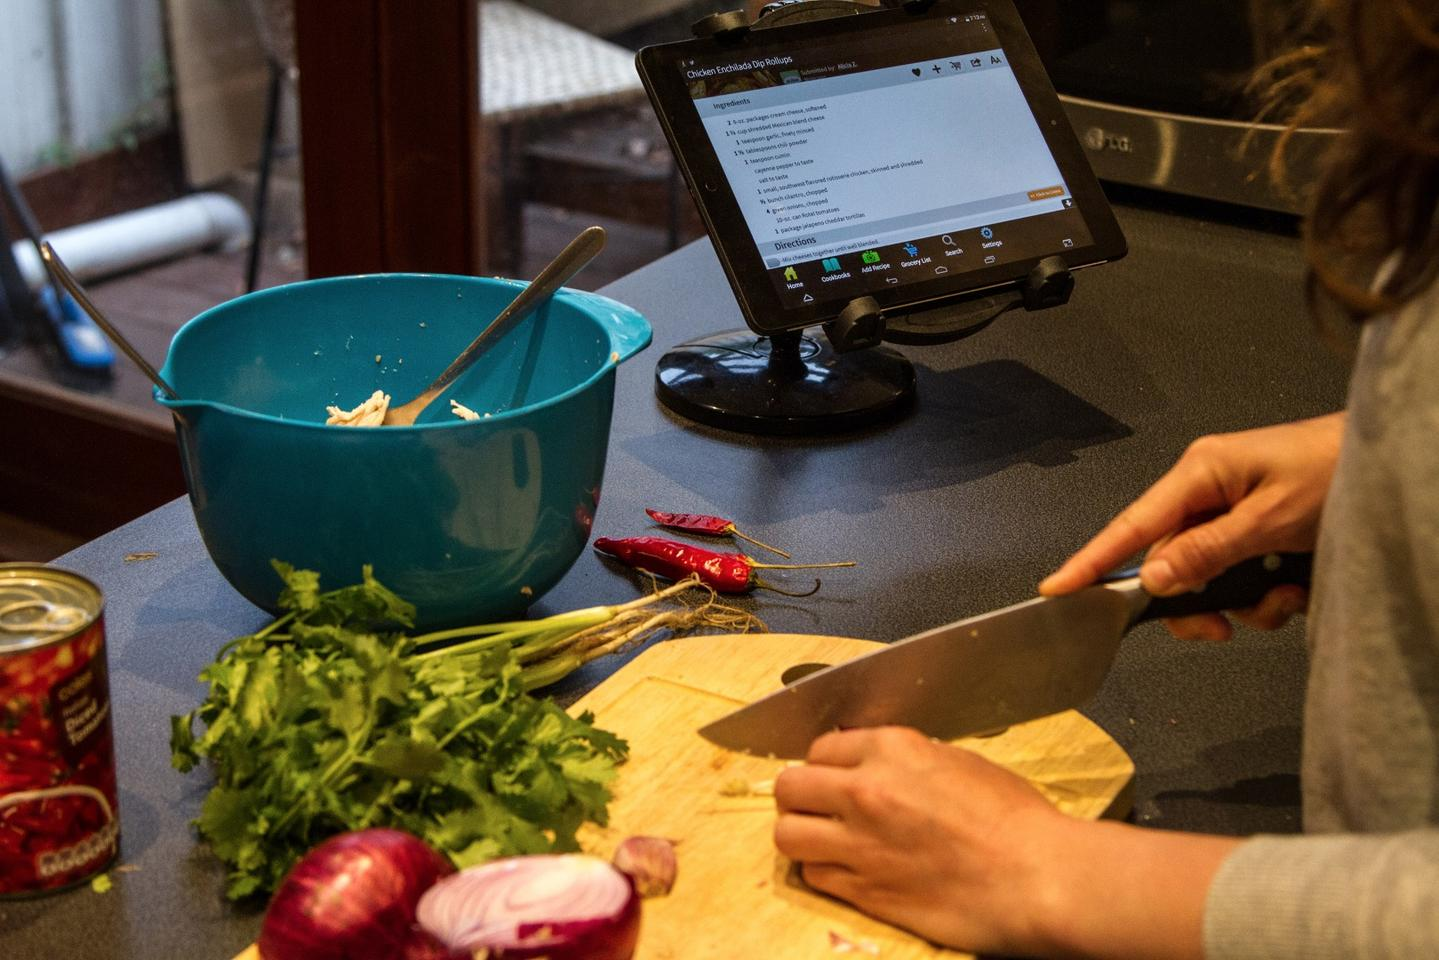 Using the tablet while cooking is as straightforward as you'd expect